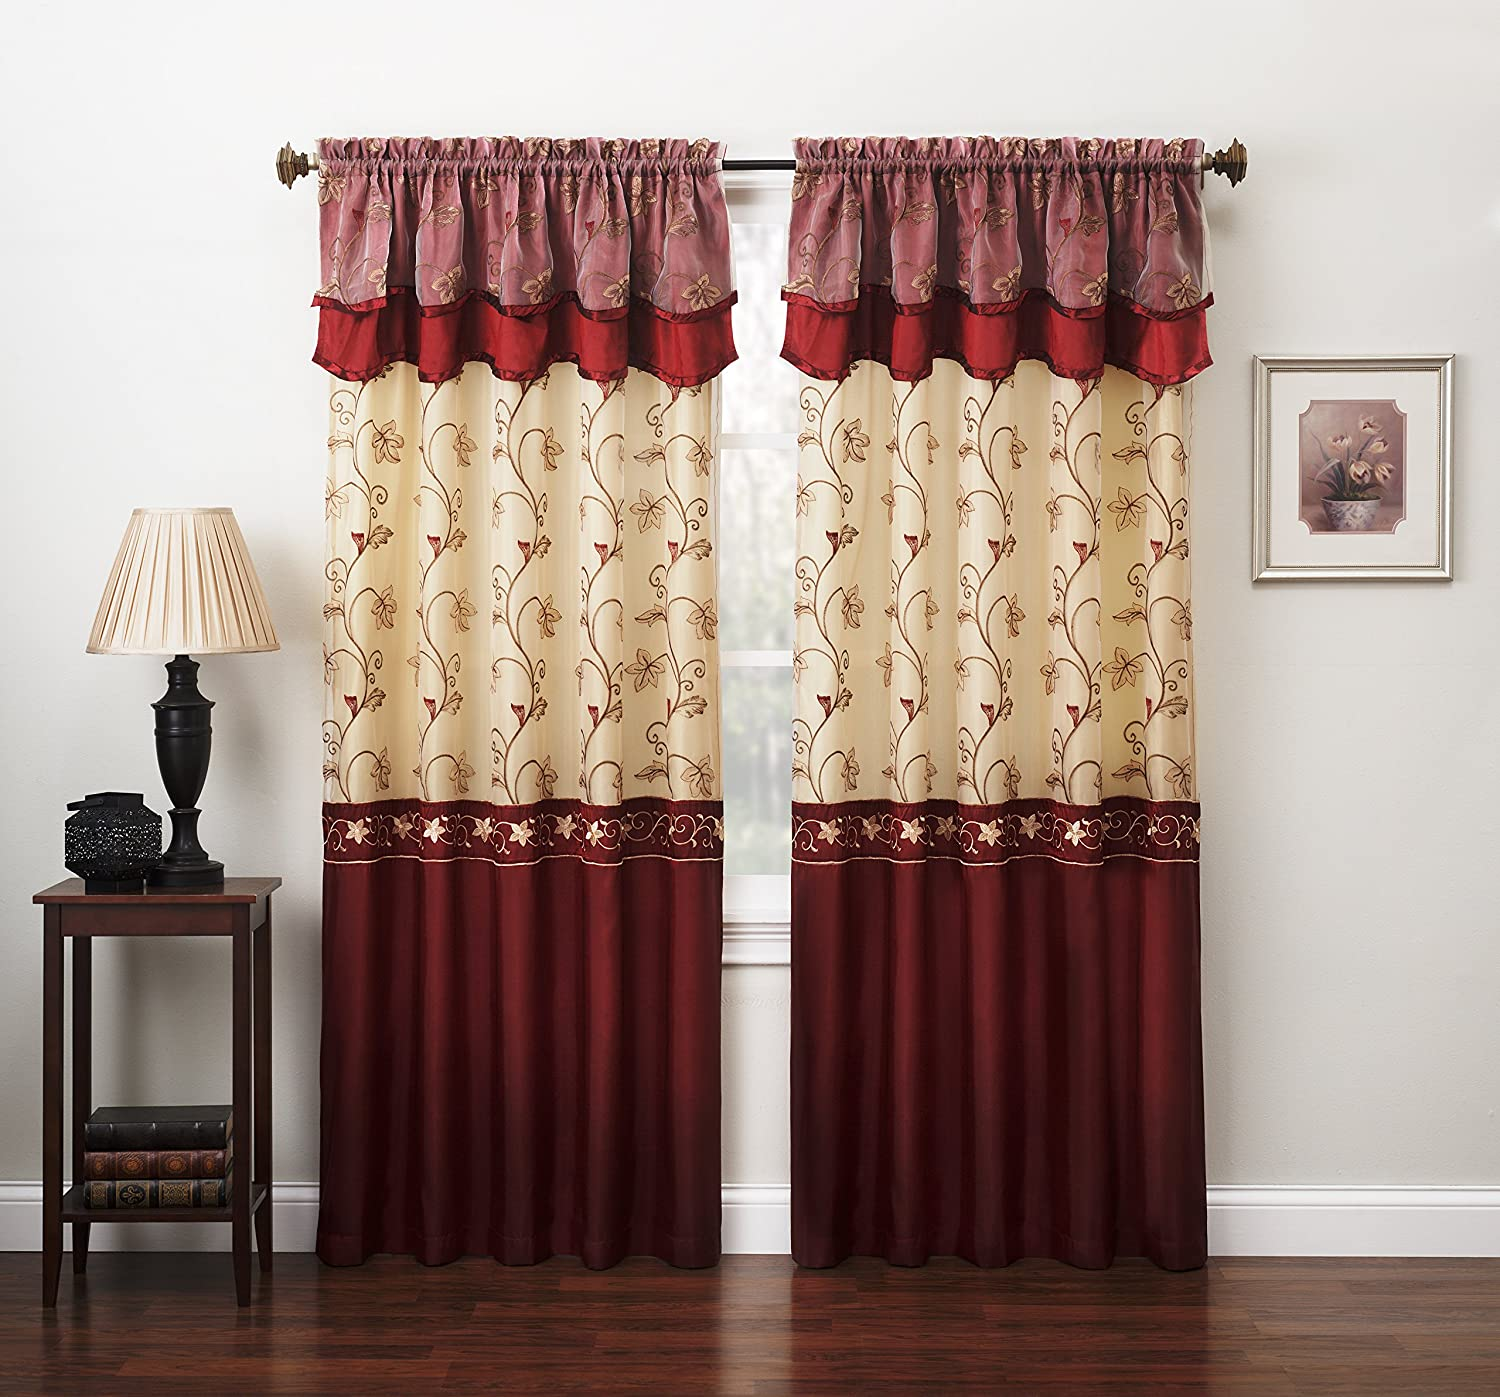 better curtains with walmart triple valance window waterfall gardens set and com homes burgundy ip